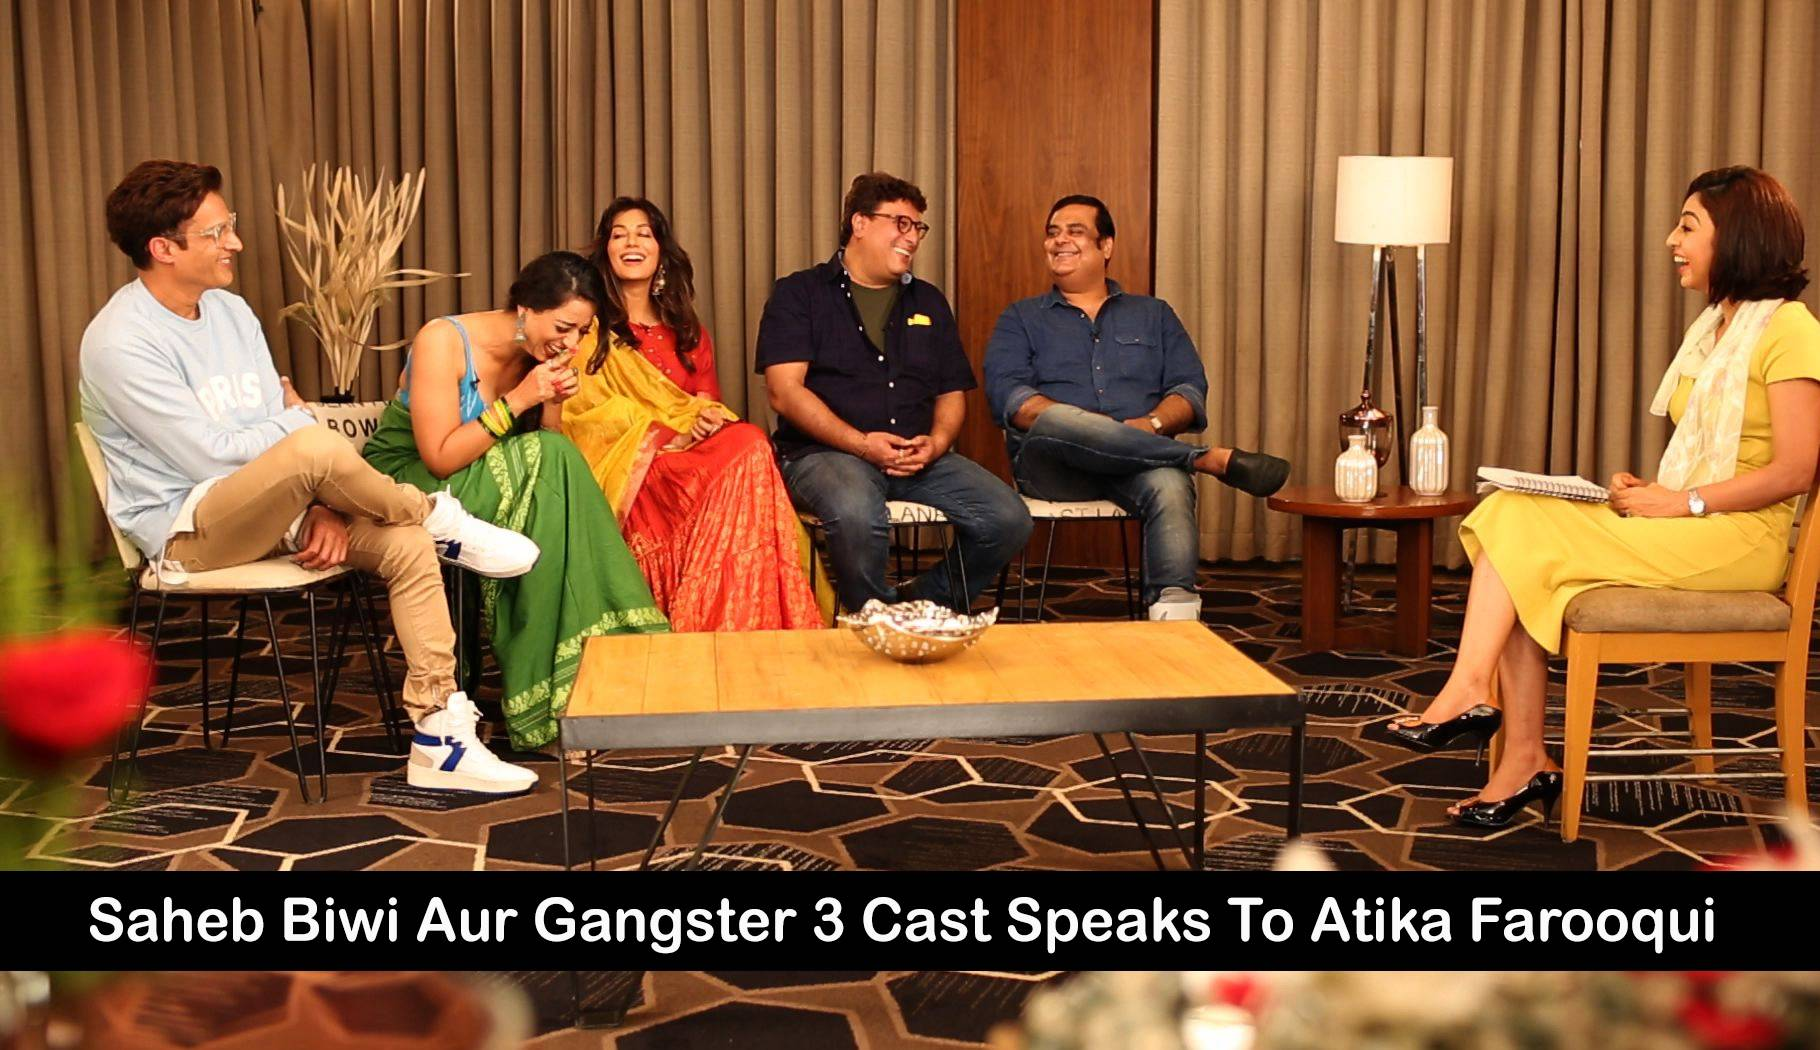 Saheb Biwi Aur Gangster 3 Cast Speaks To Atika Farooqui on Film, Life and Romance